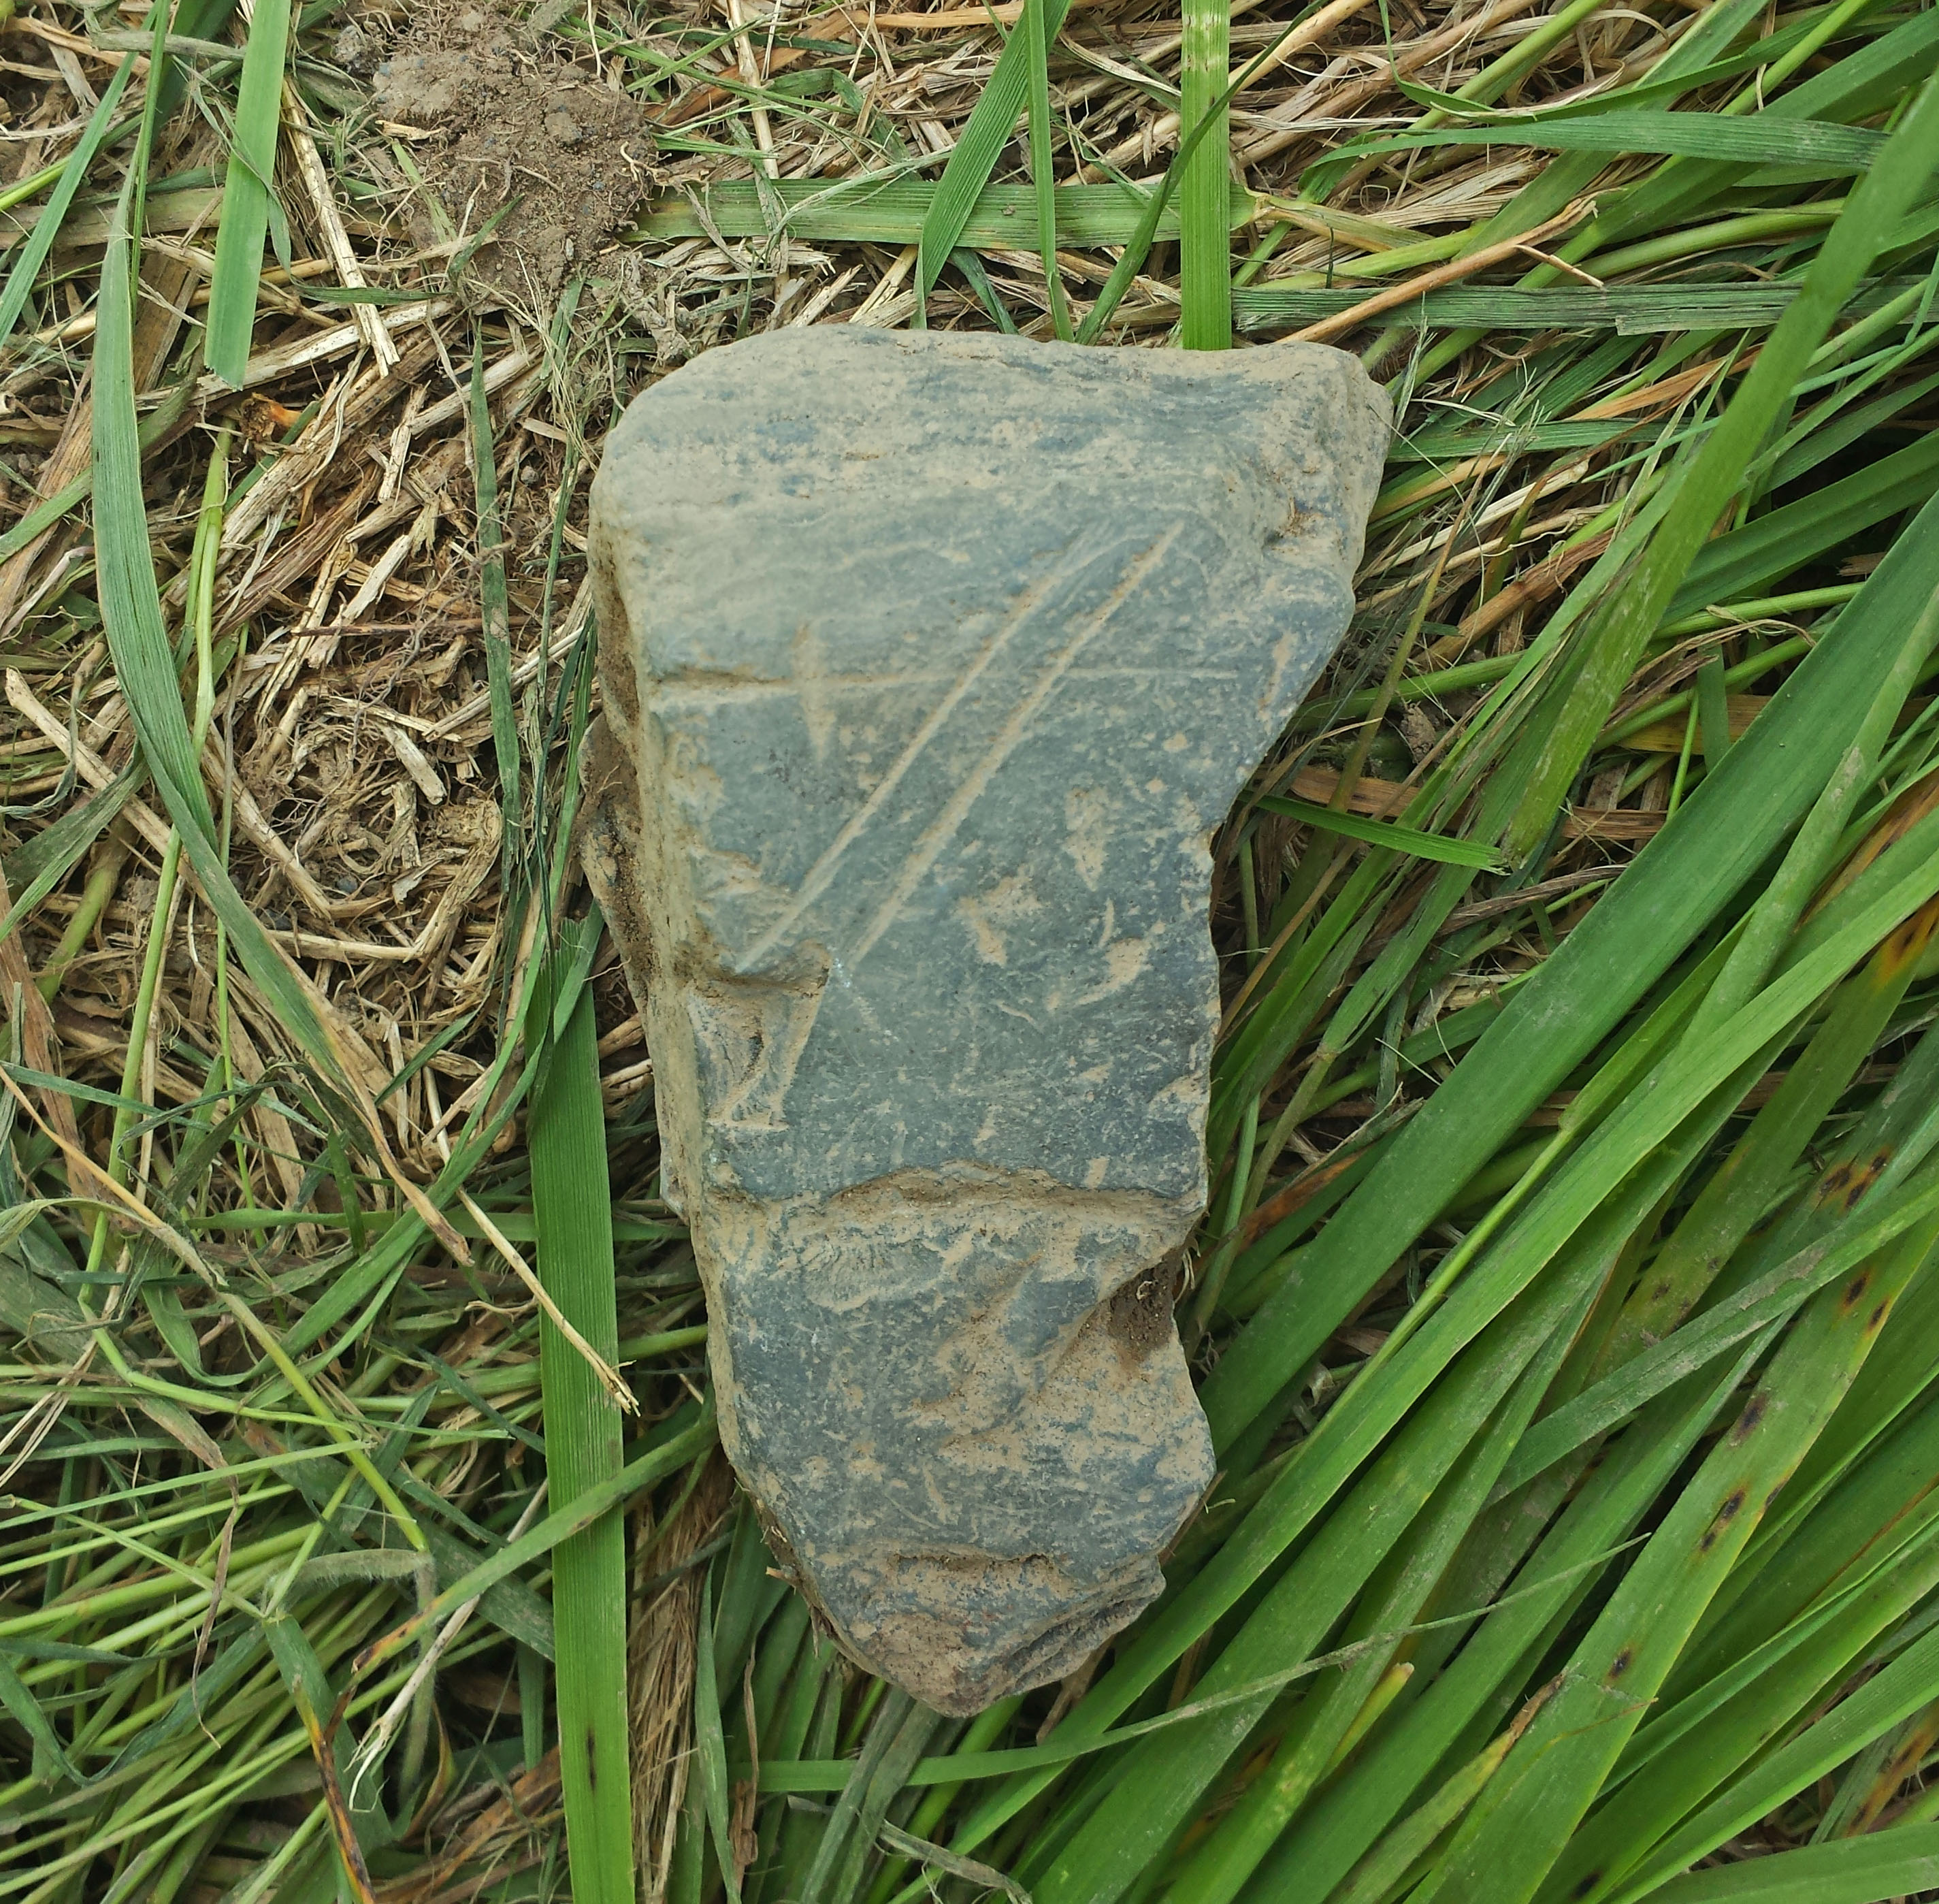 Inscribed stone found by Tiffany Brazil.